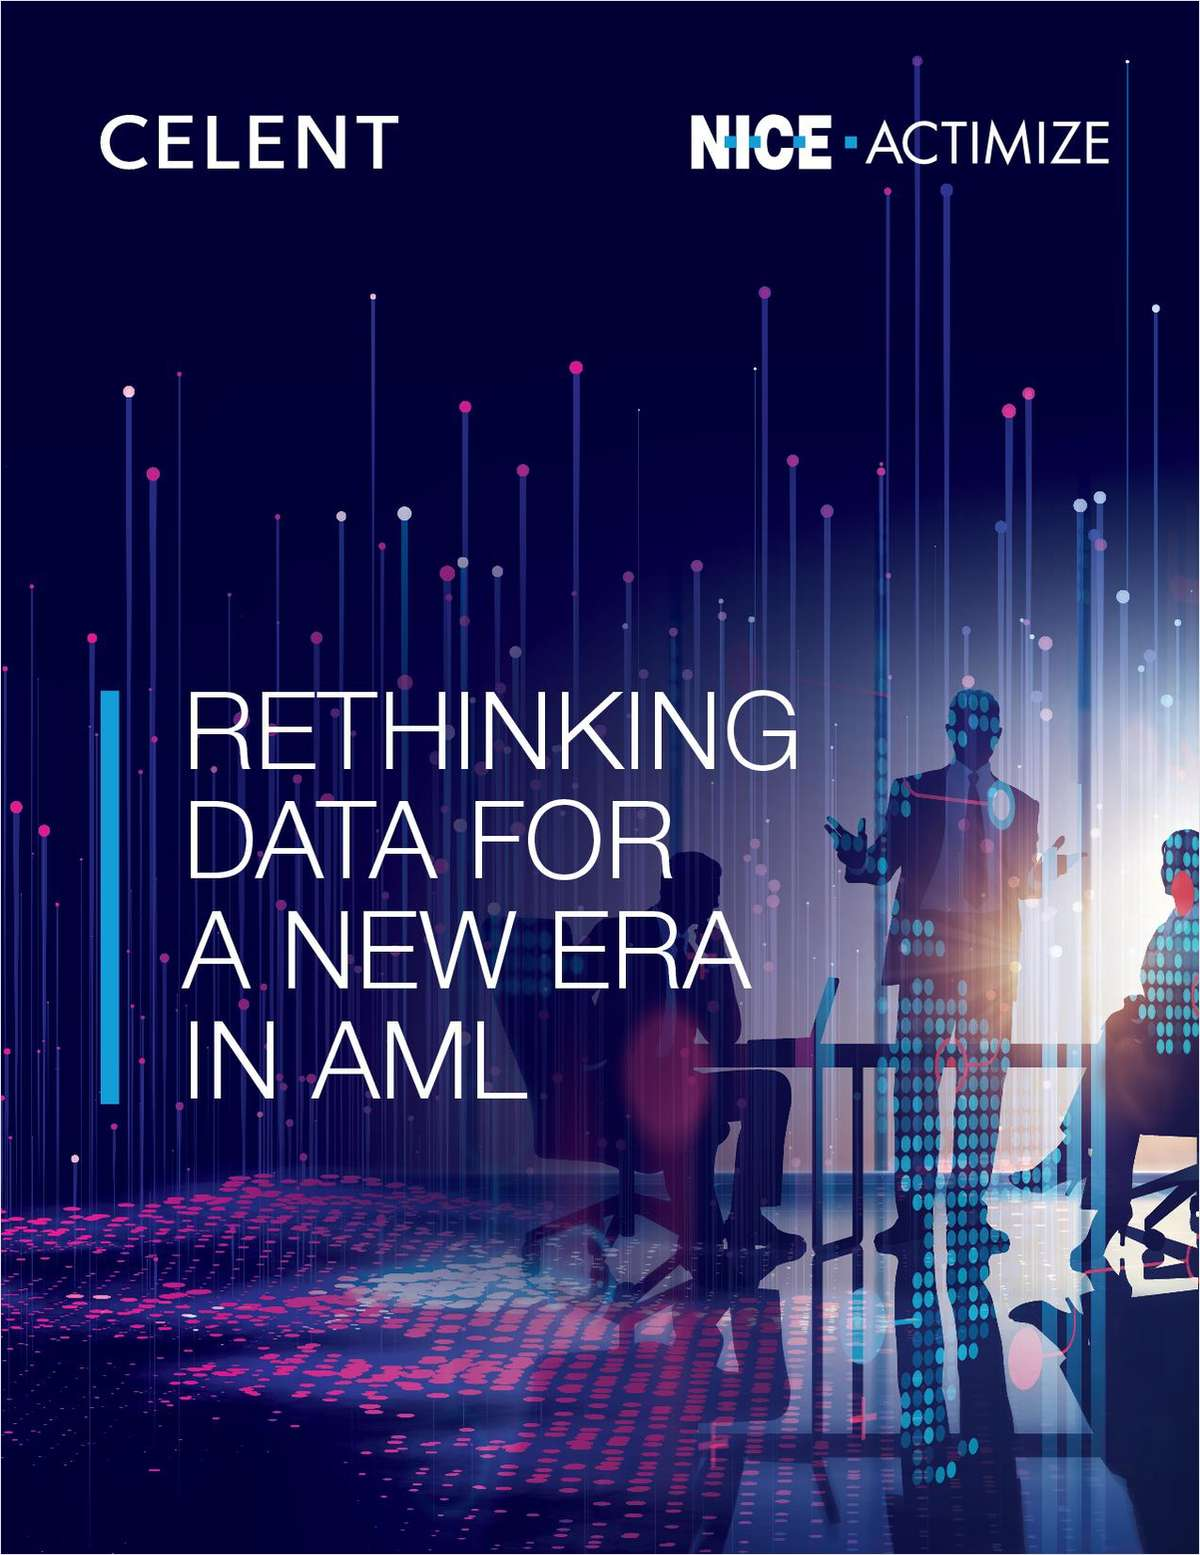 Rethinking Data for a New Era in AML